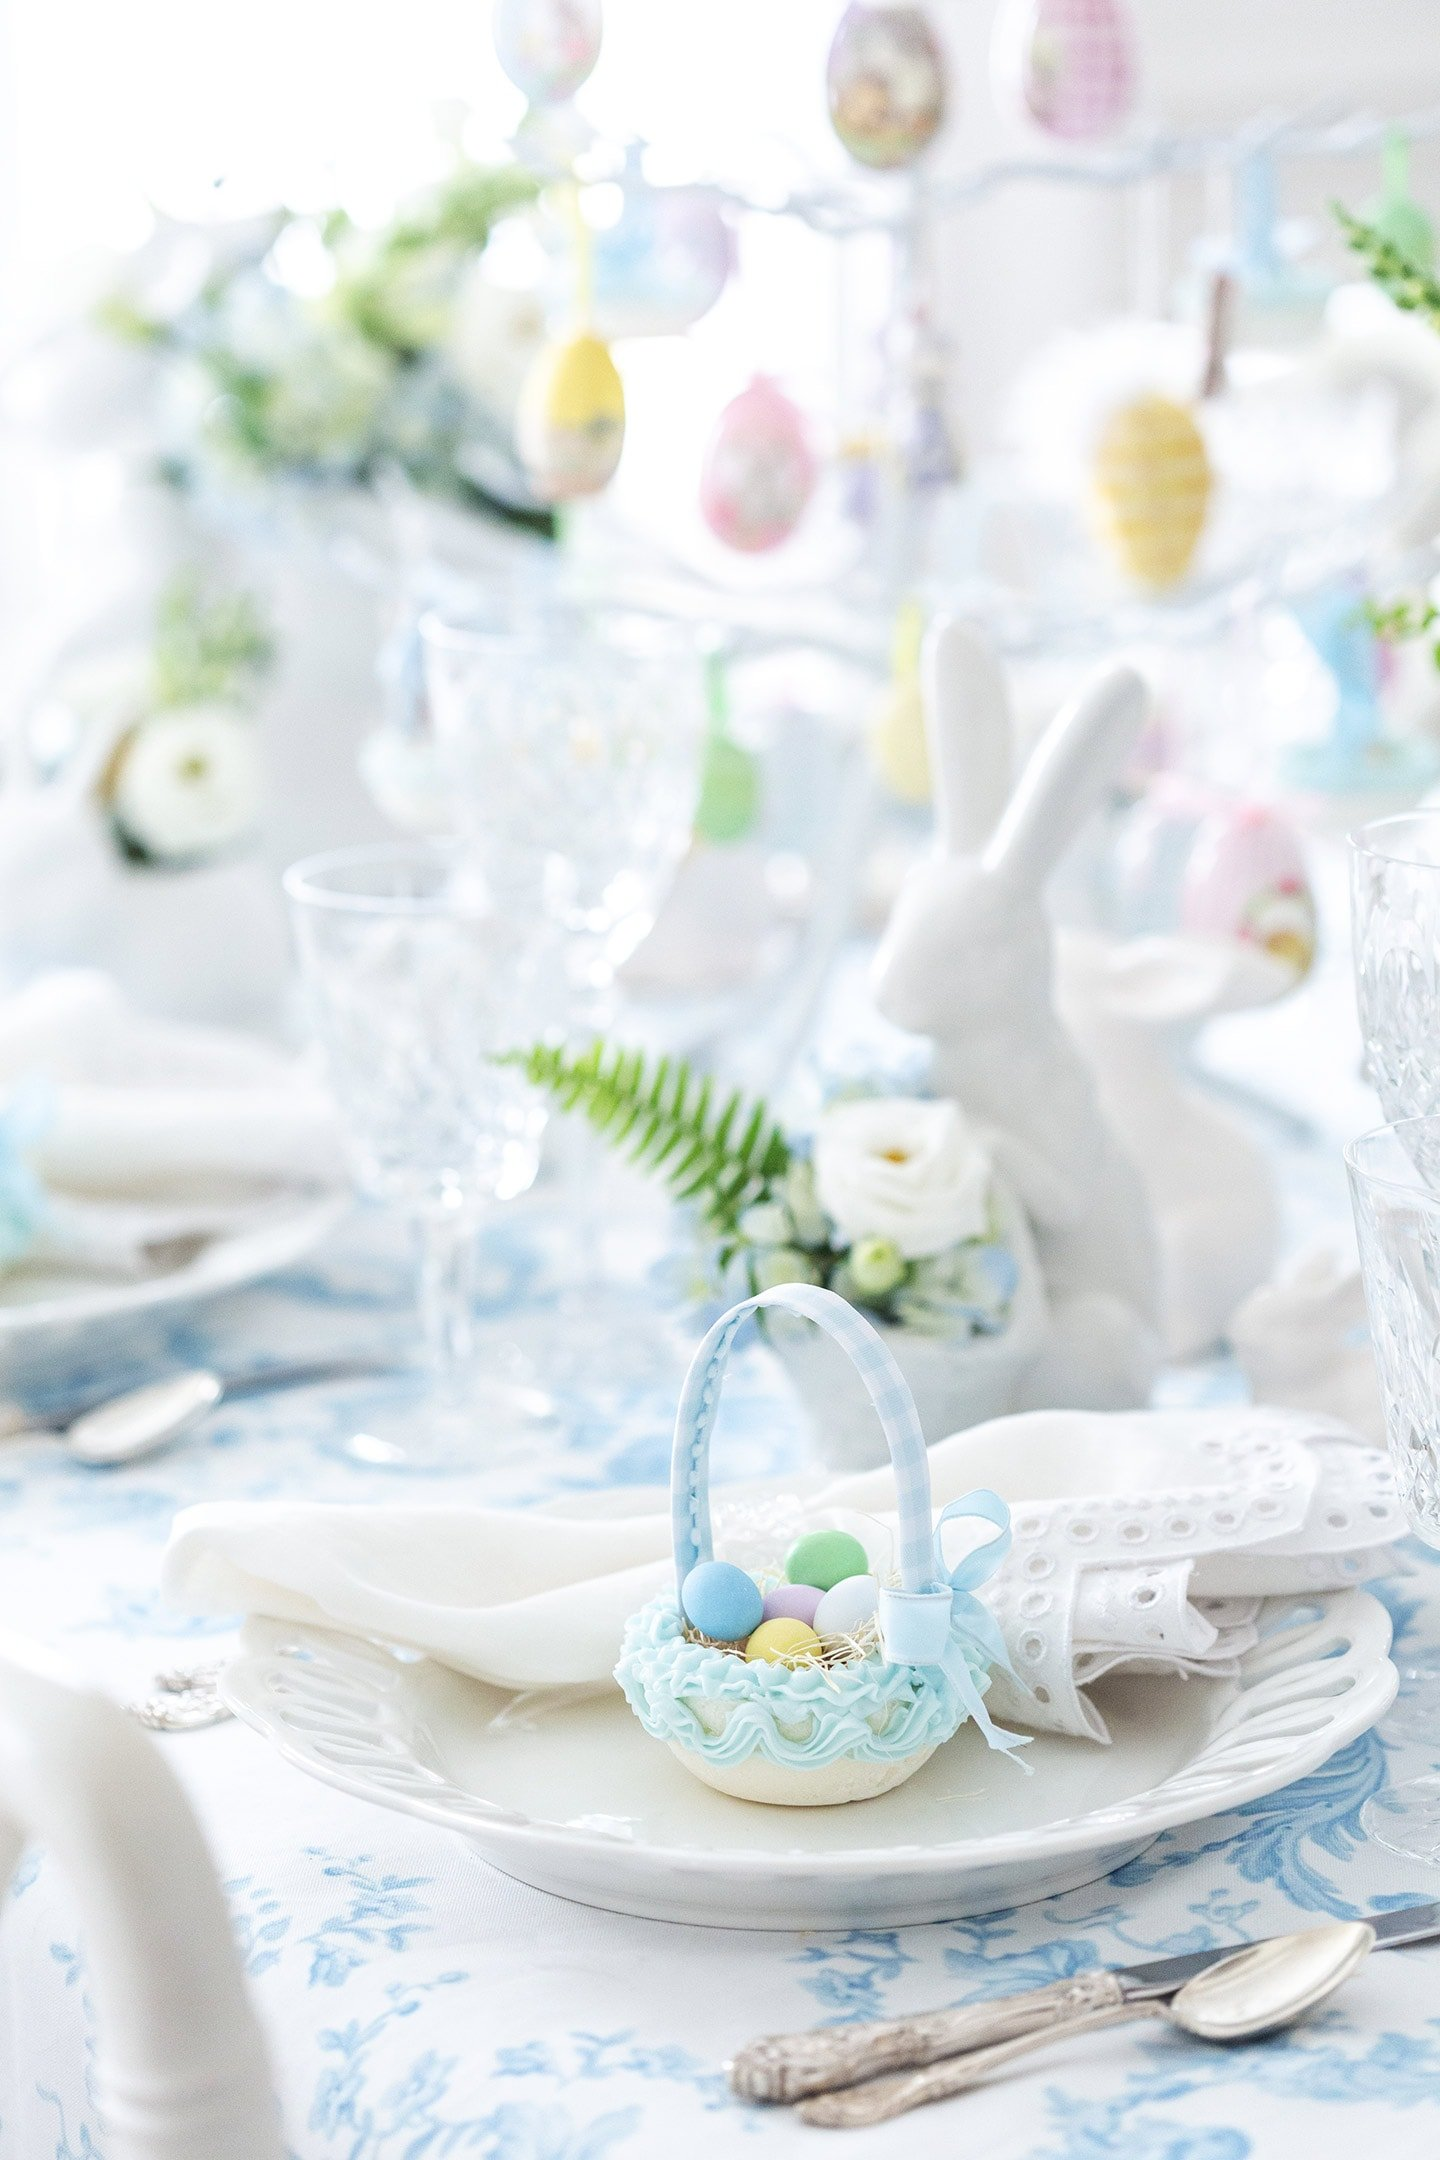 blue and white Easter place setting with sugar basket